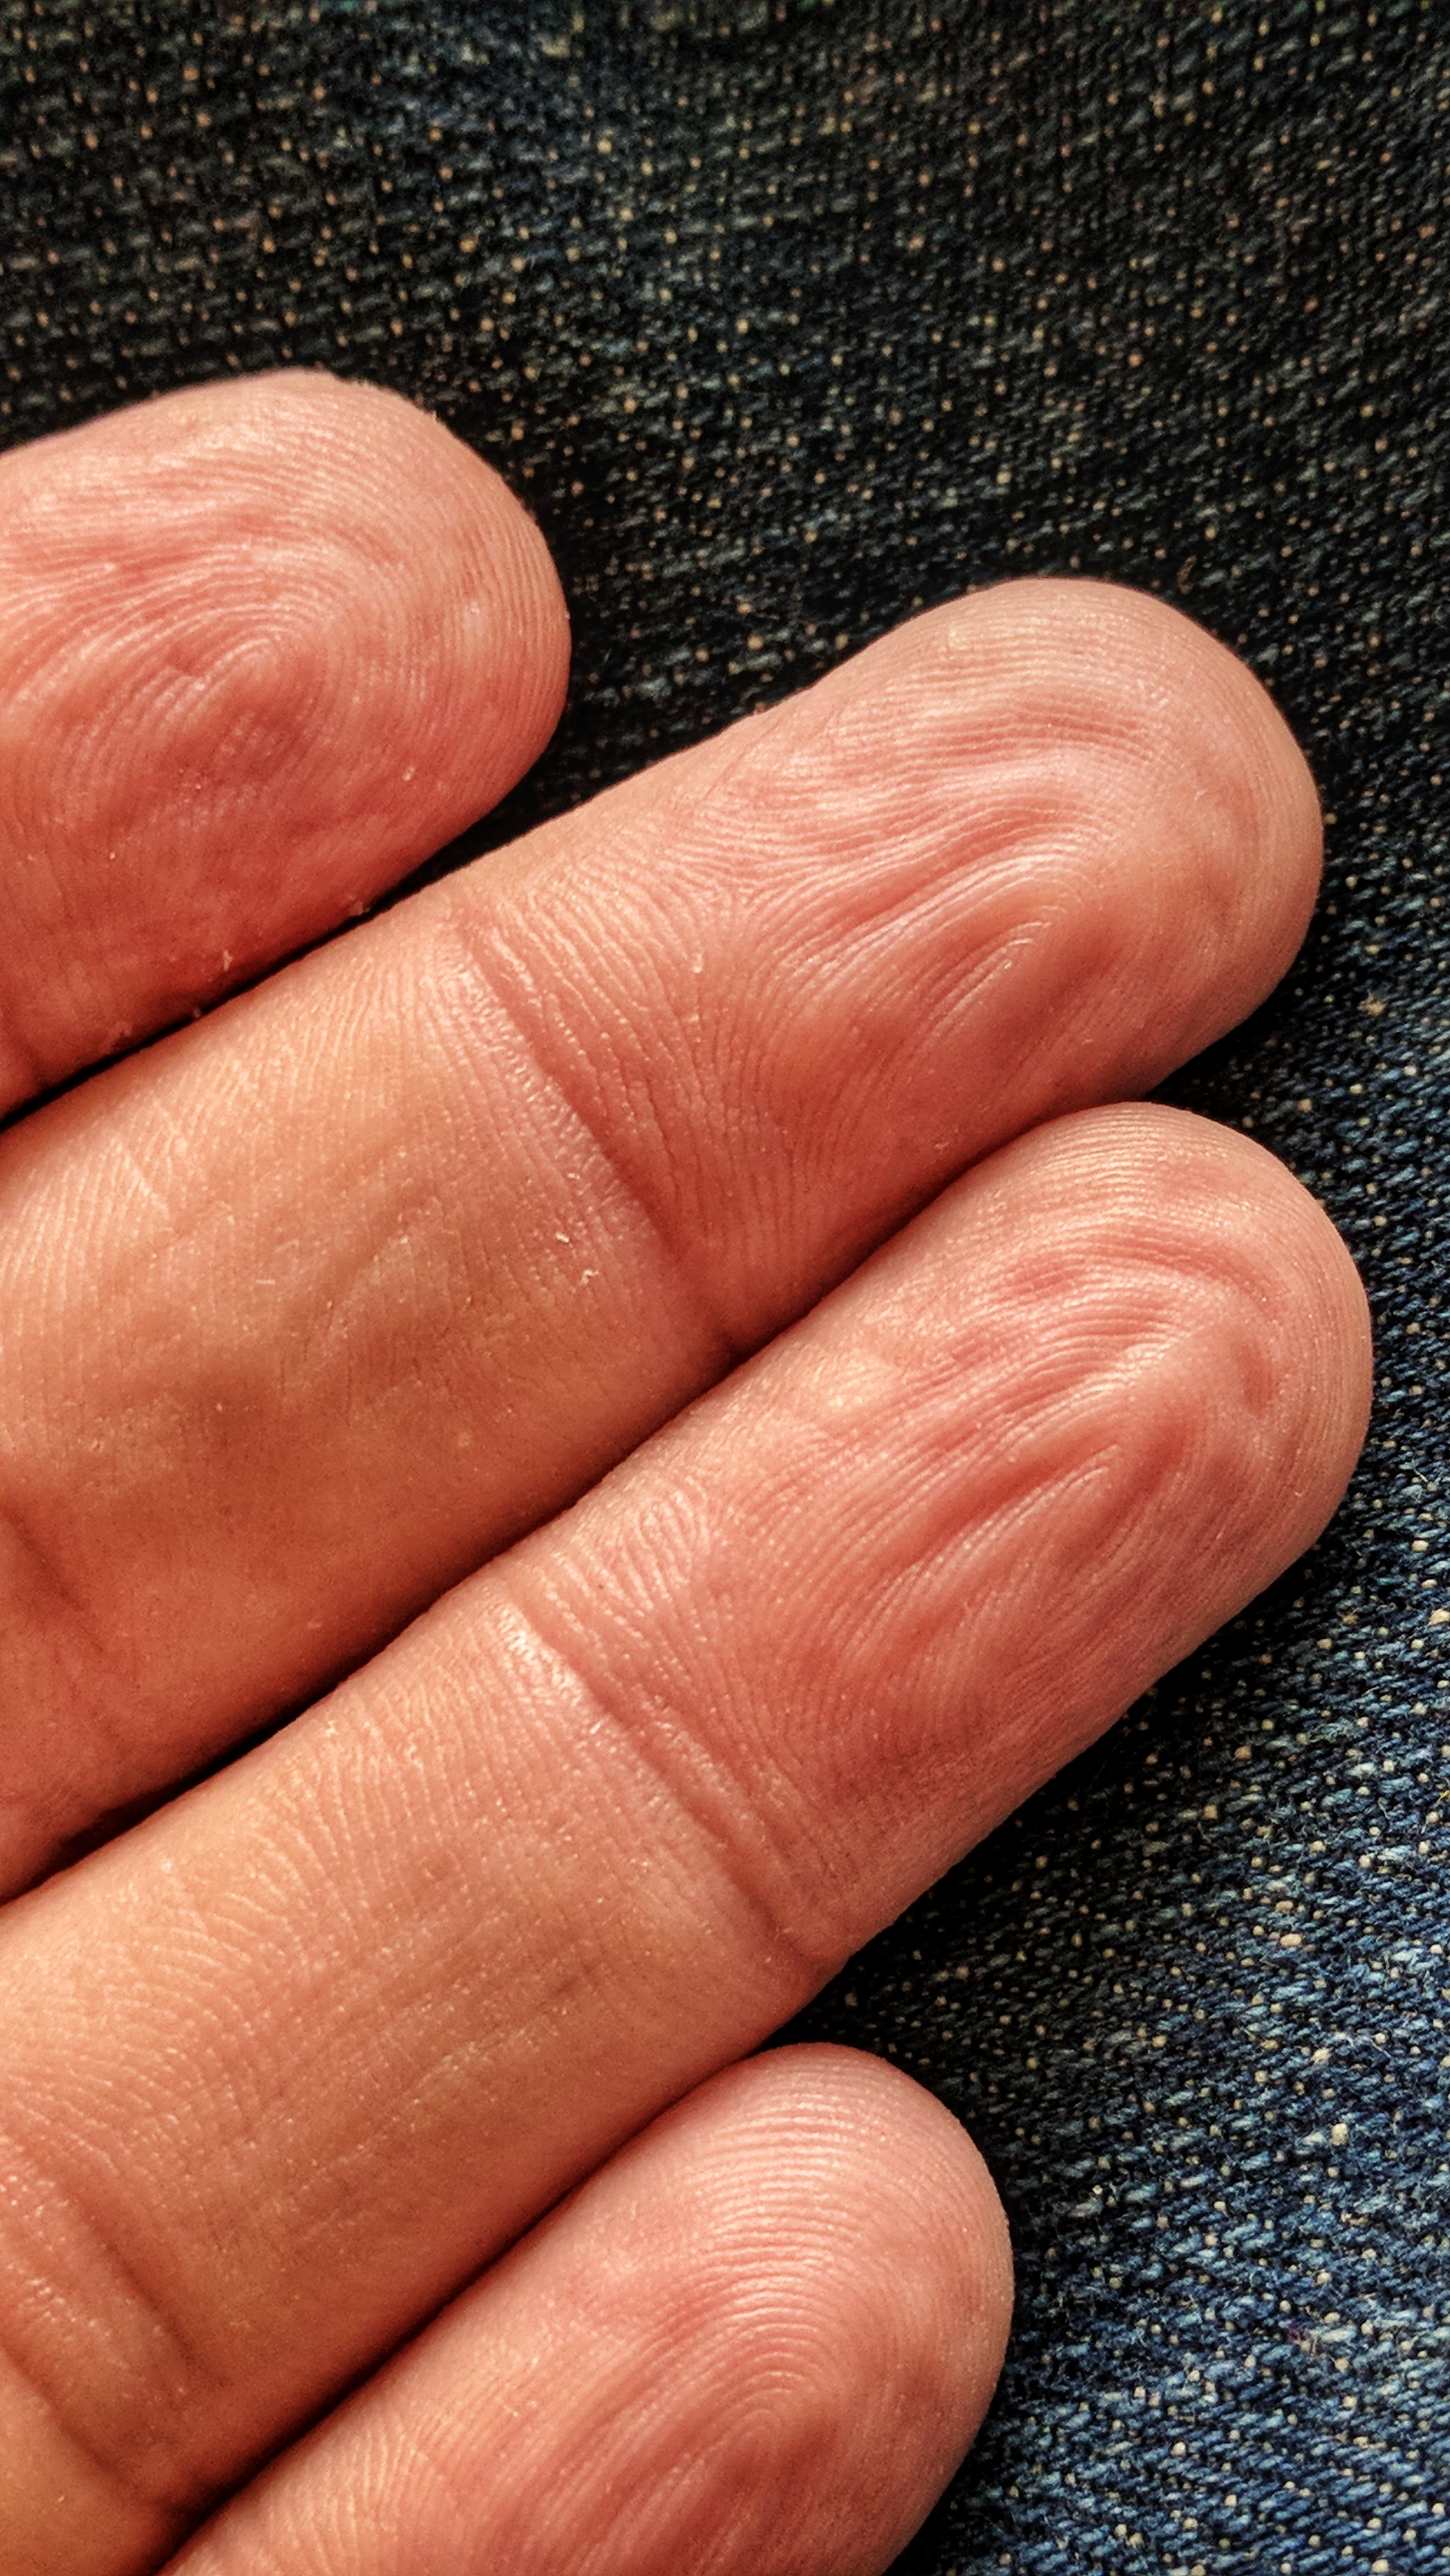 Wrinkled fingertips after a long bath